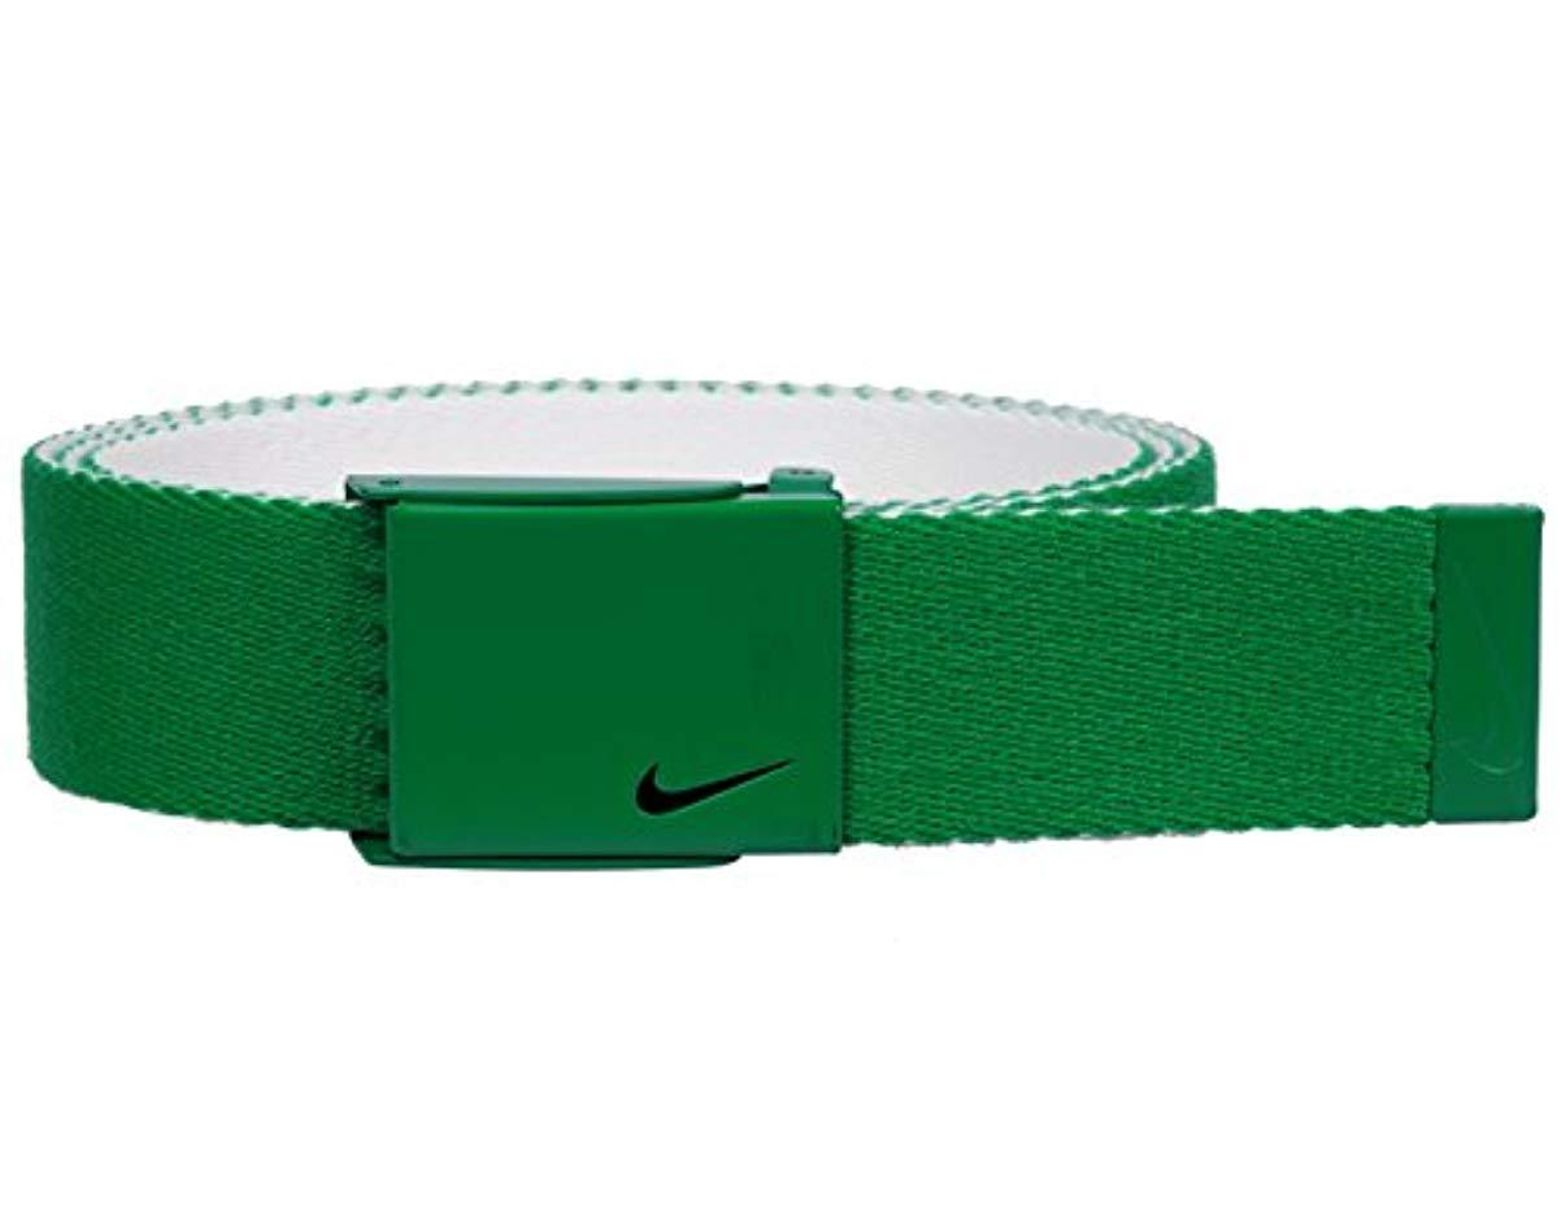 936a335cca Nike New Tech Essentials Reversible Web Belt, Pine Green/white, One Size in  Green for Men - Lyst